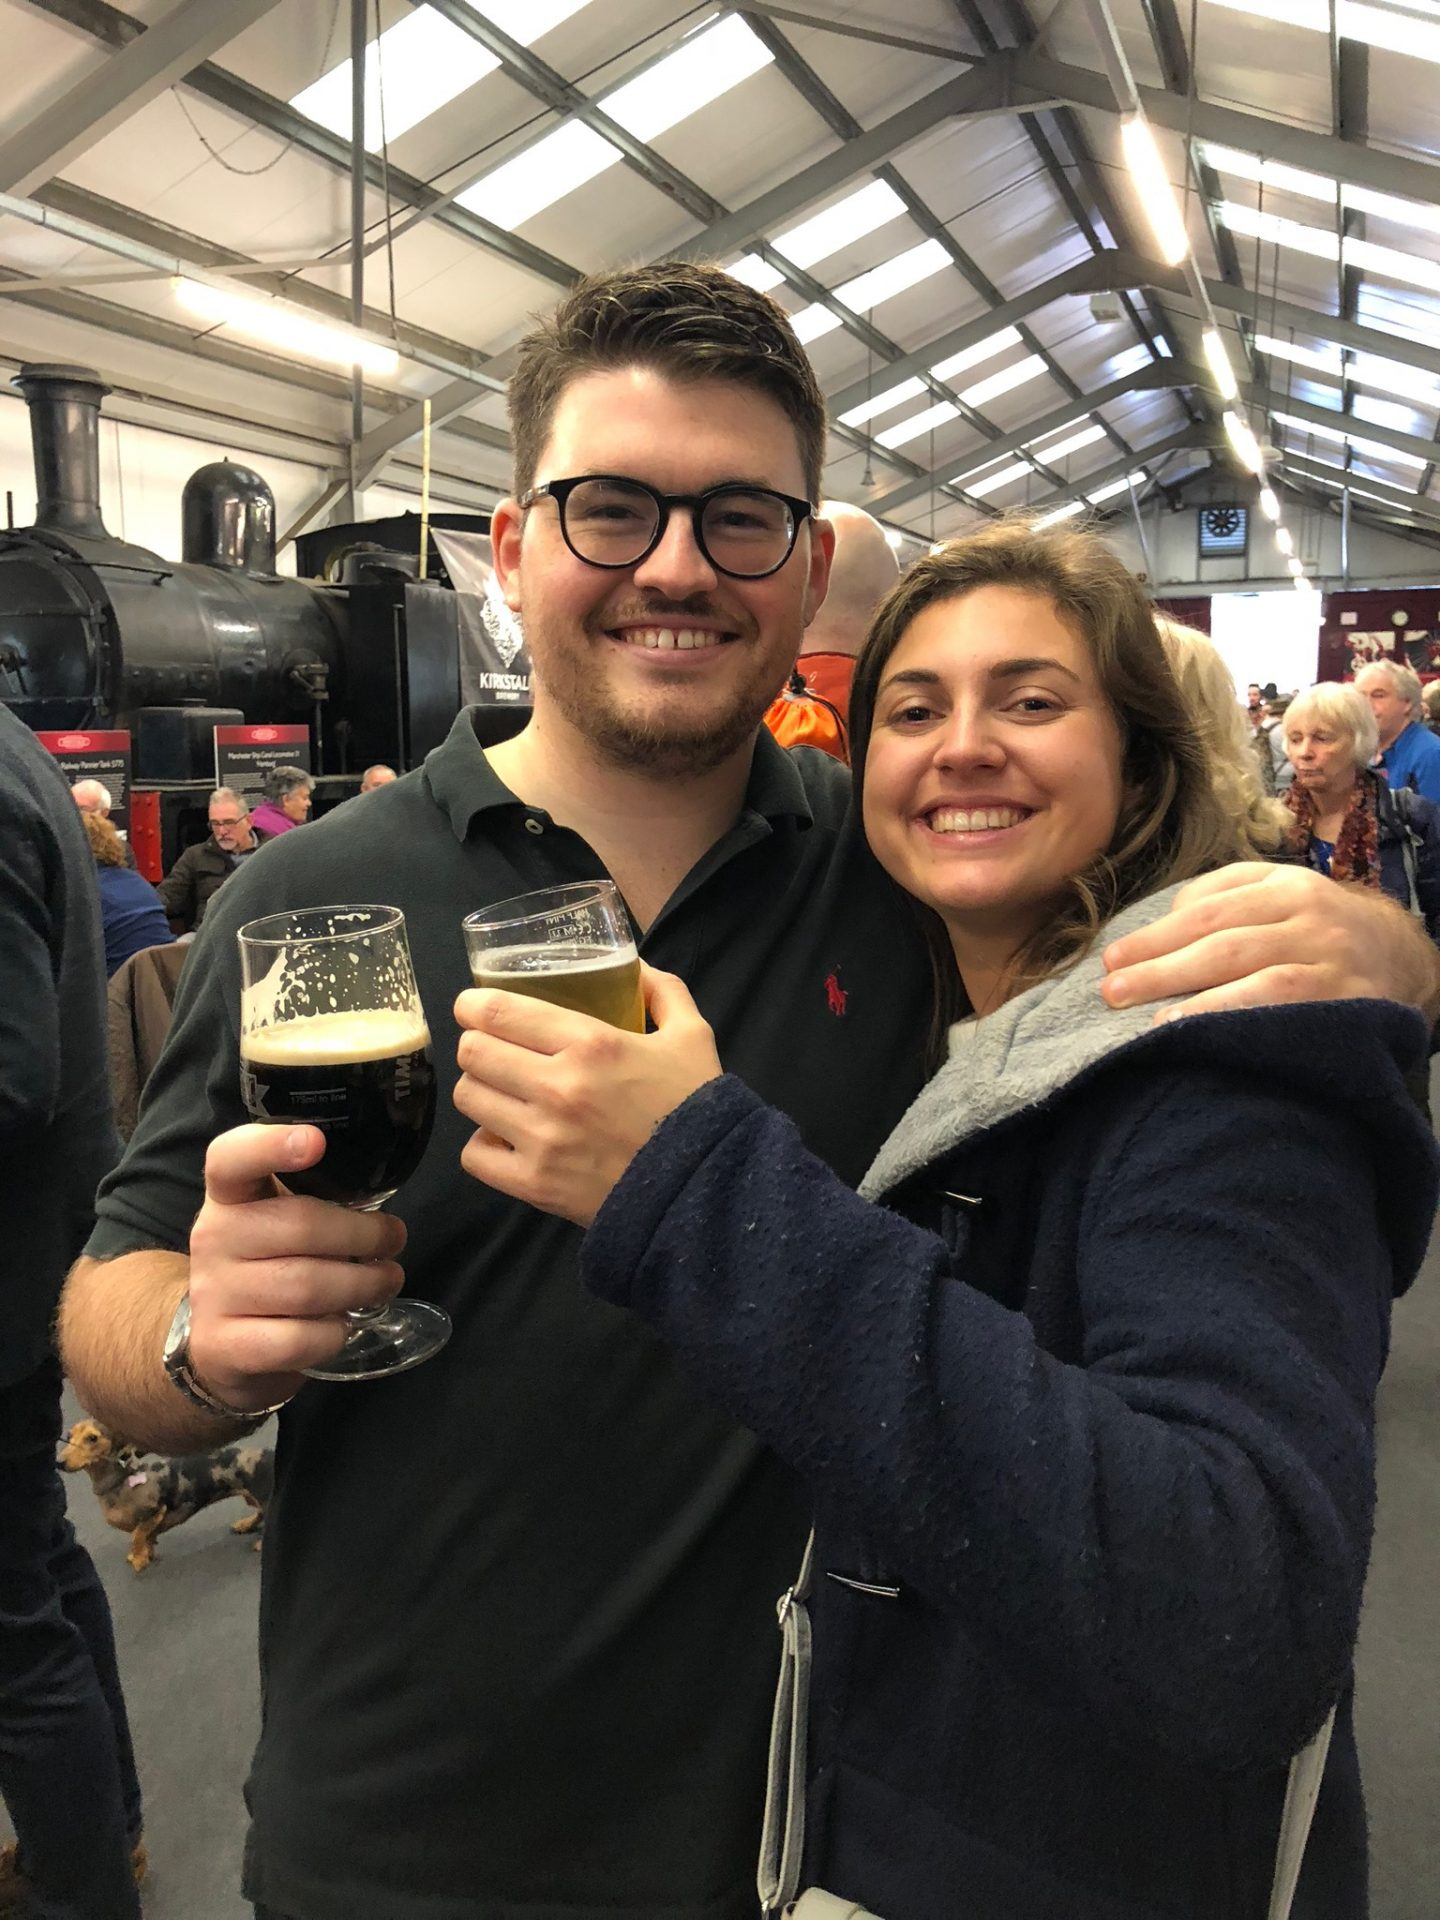 Man and women with a beer each at the KWVR beer festival